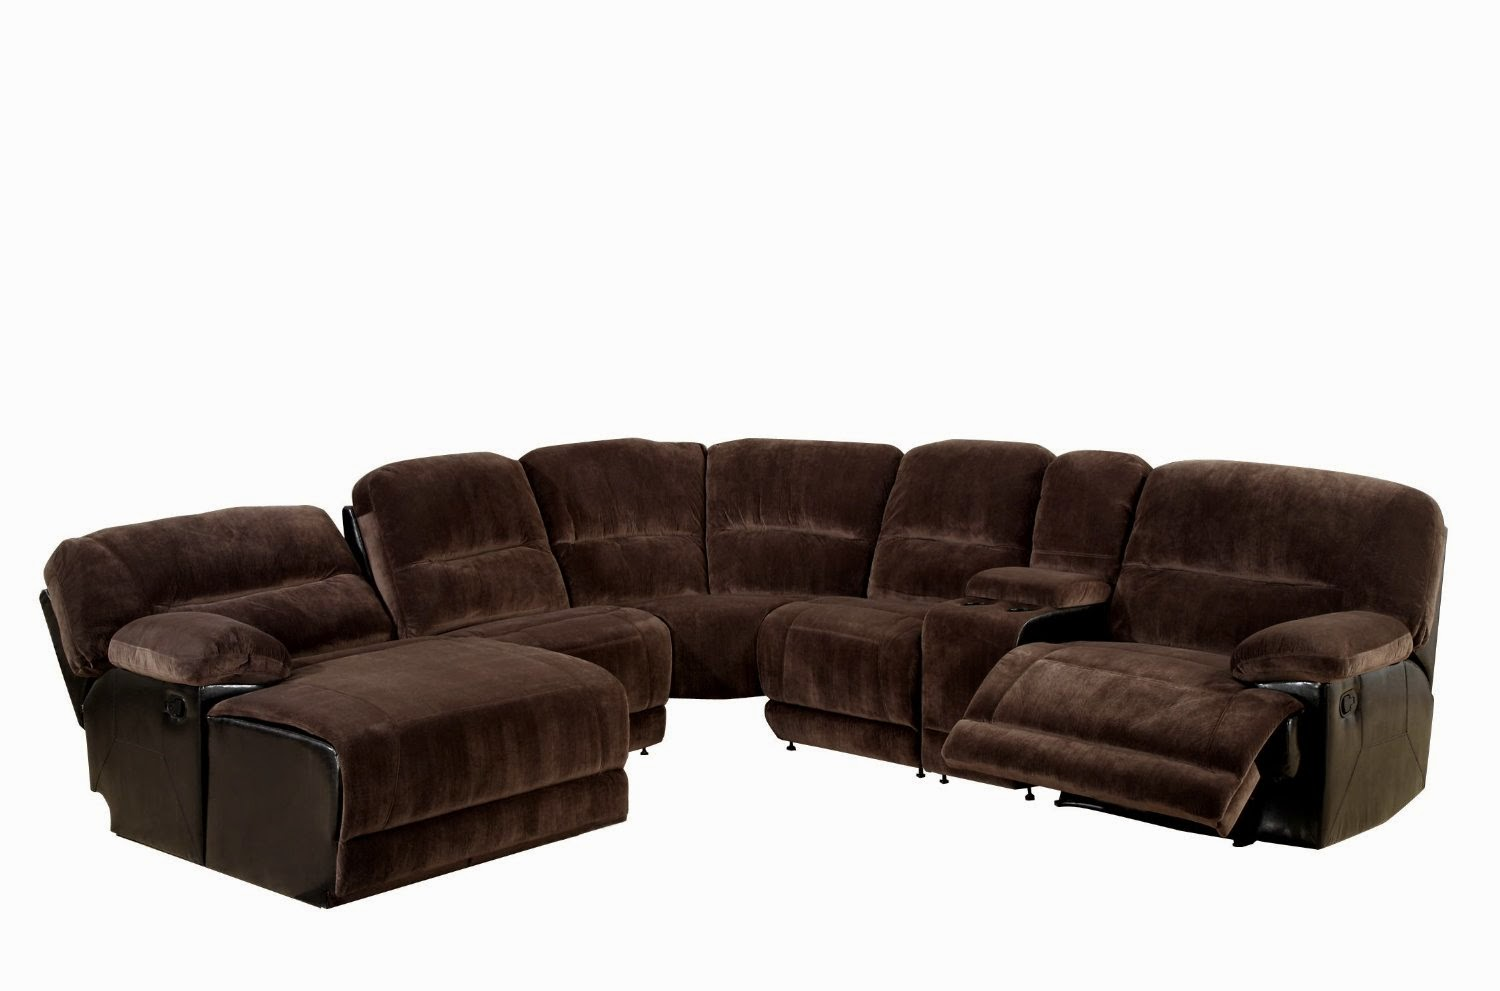 Sofa recliner reviews microfiber recliner sectional sofa couch chaise Loveseat chaise sectional